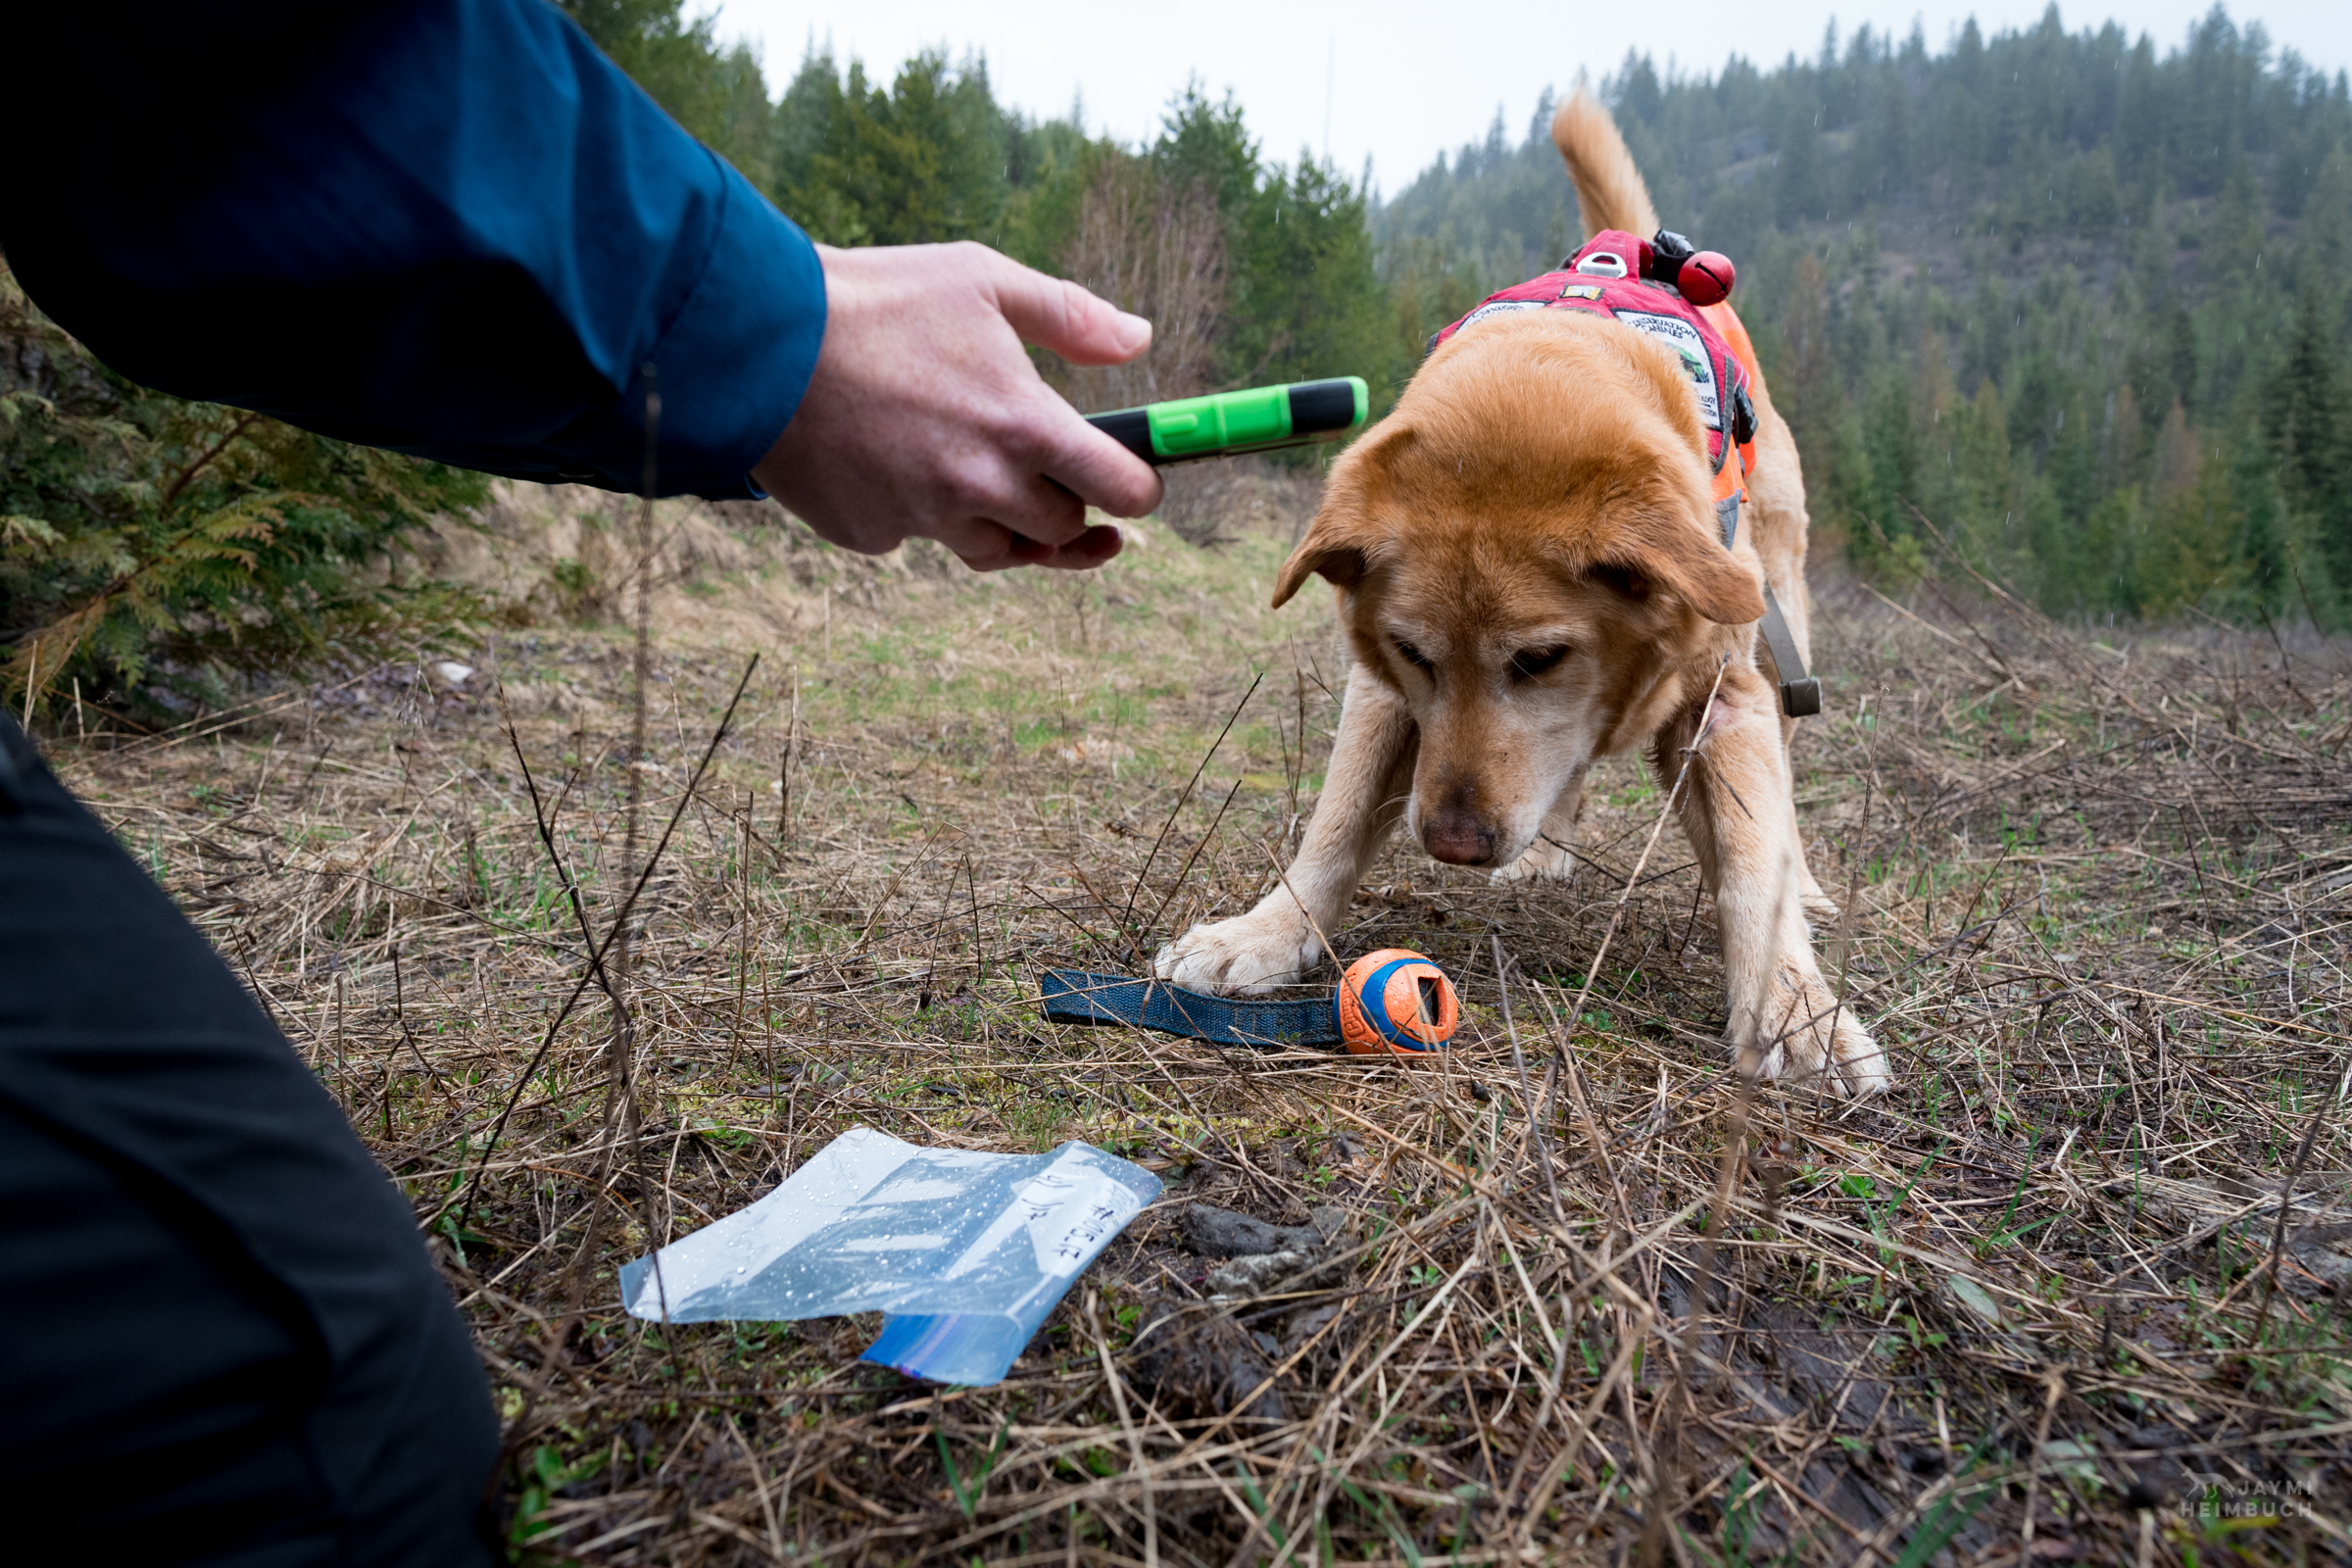 Field technician Rachel Katz recording a sample found by scent detection dog Chester, Conservation Canines, University of Washington's Center for Conservation Biology, Washington